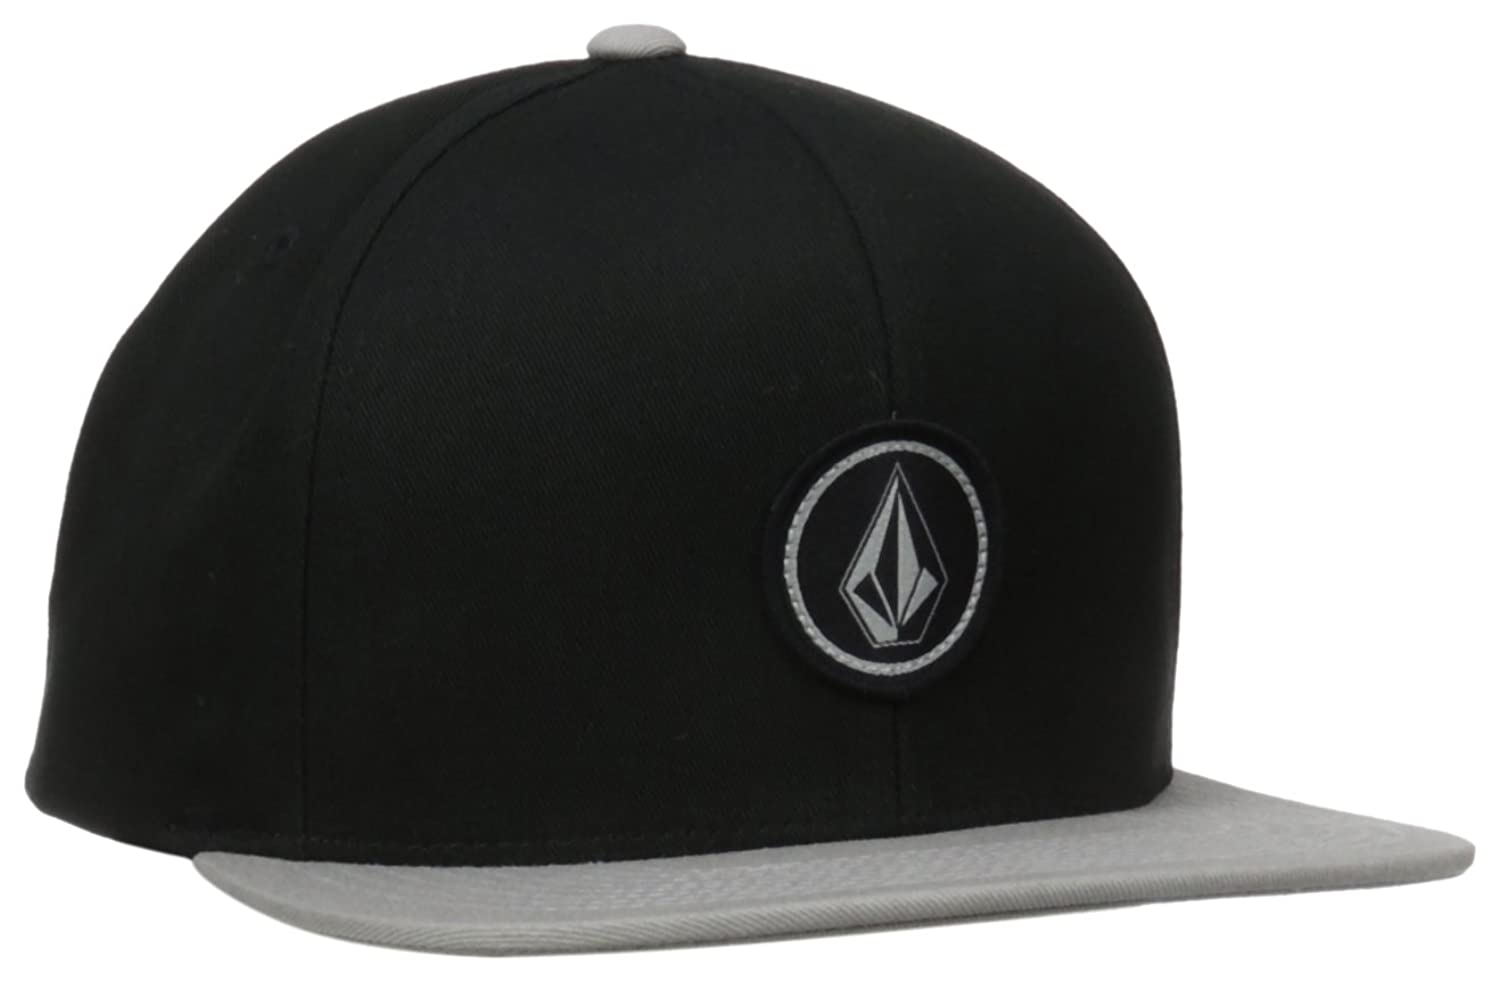 80fdb71c5b2 Six panel adjustable snapback hat featuring round Volcom stone patch at  front. Flat brim. One size fits all